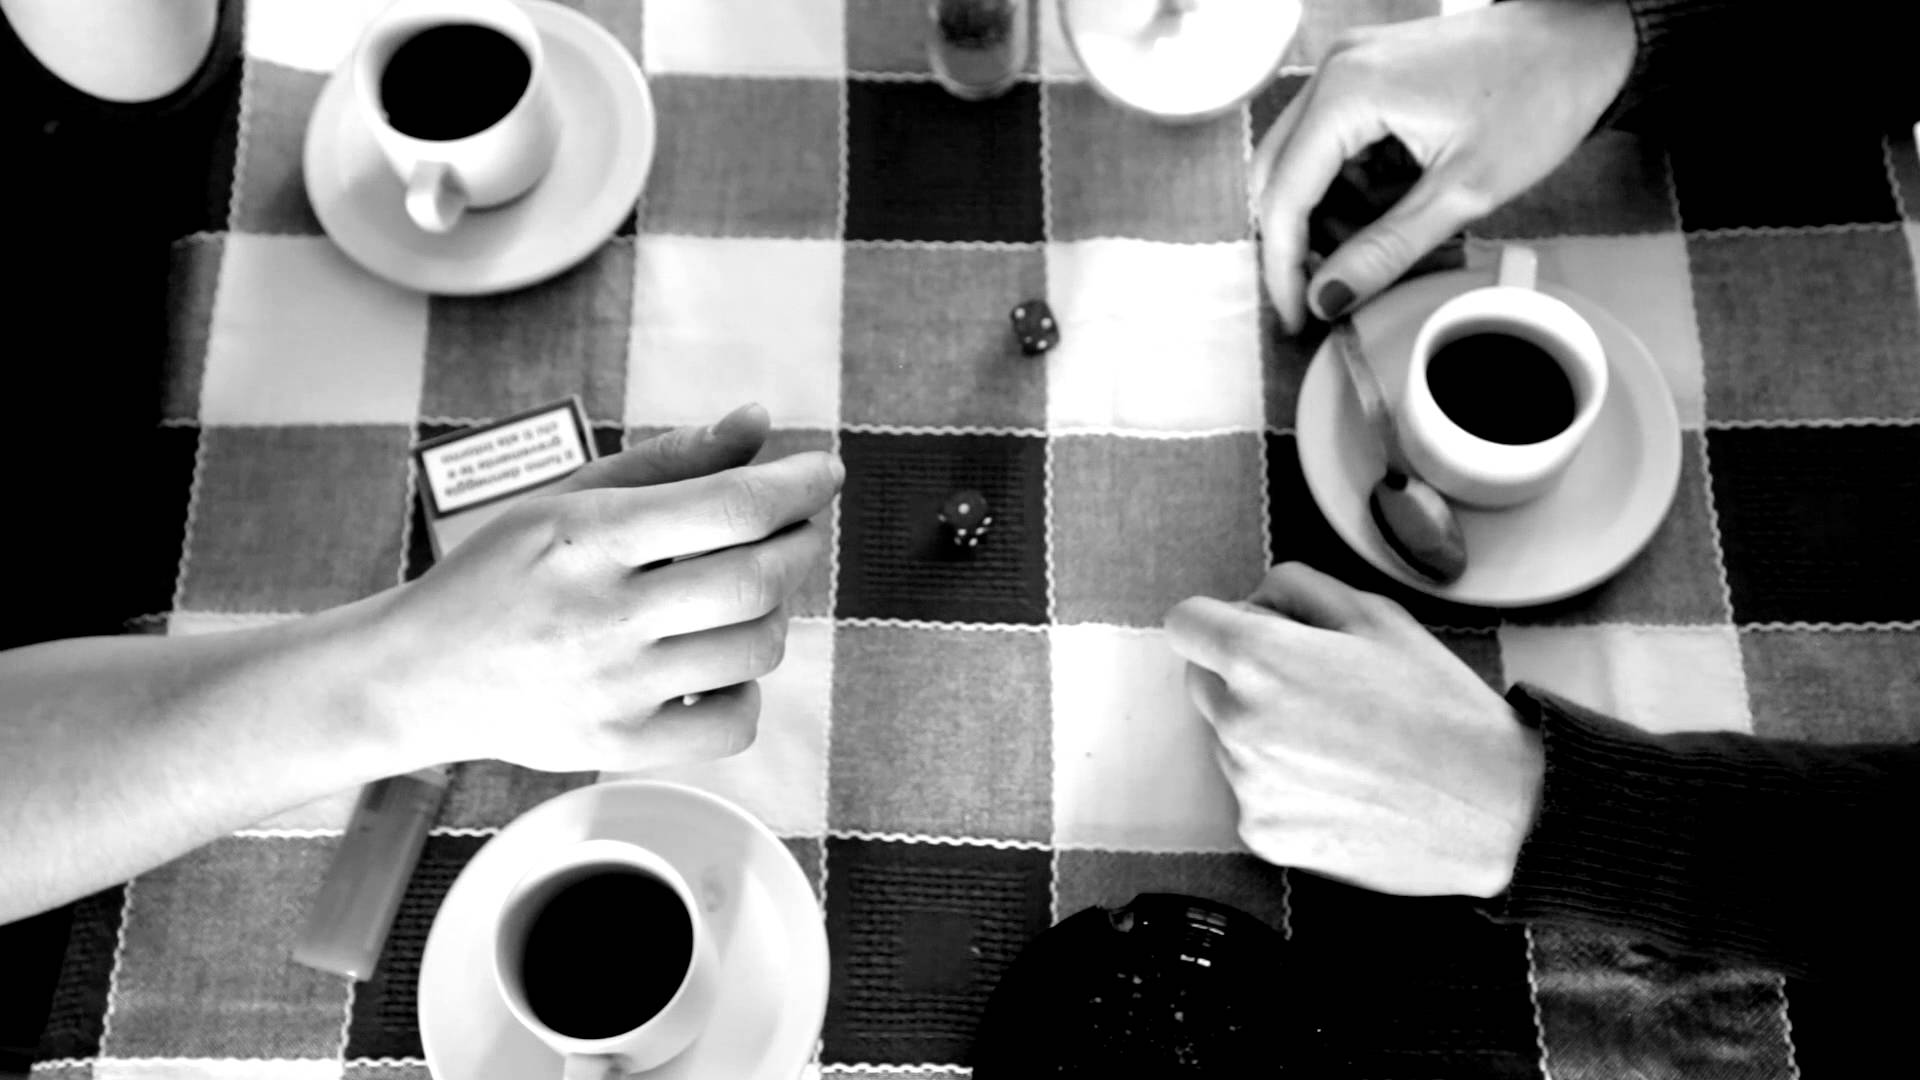 Coffee and cigarettes movie meaning